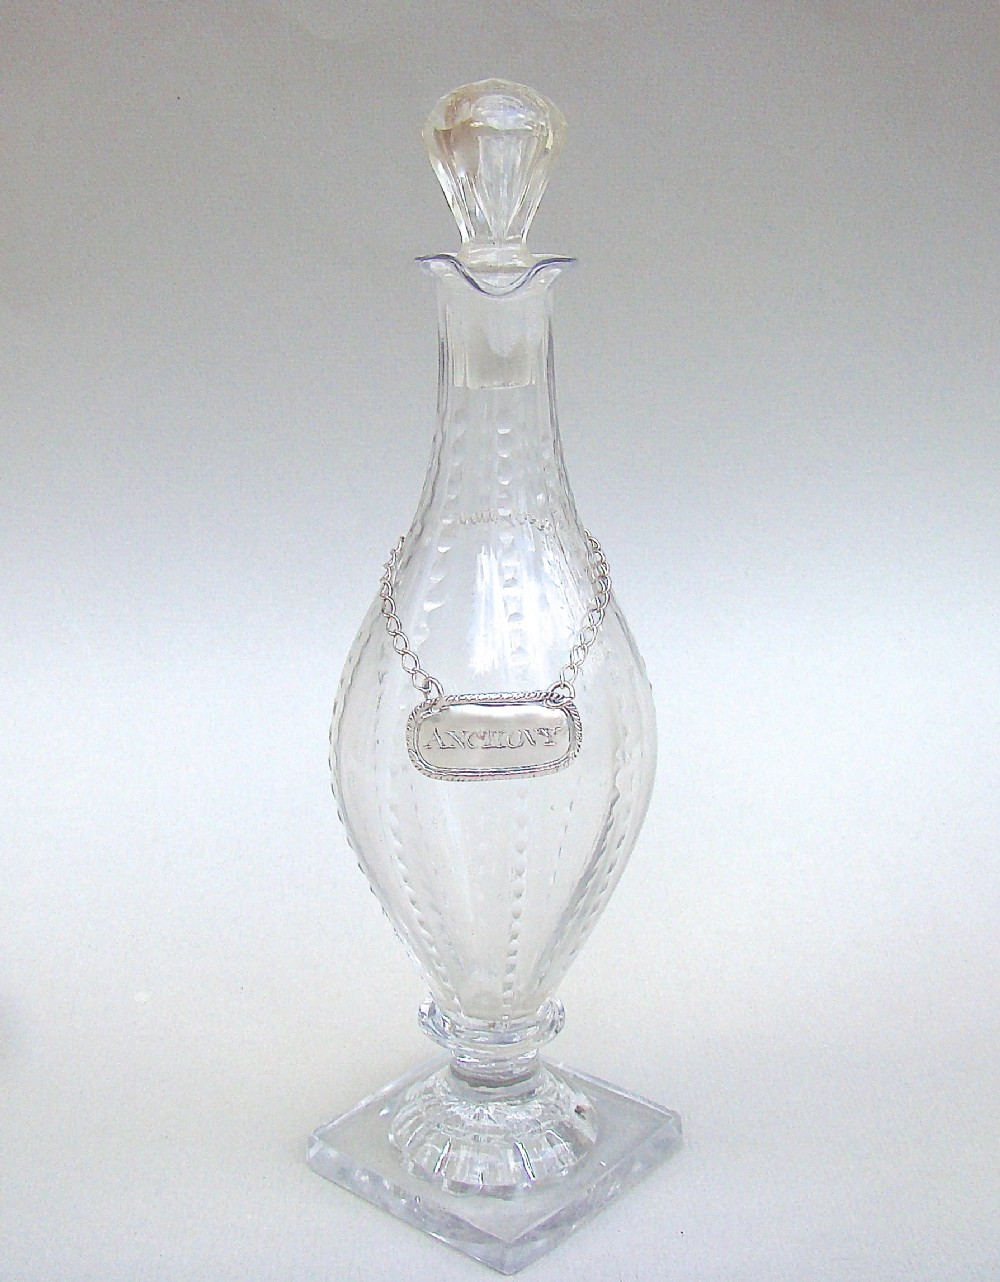 georgian cut glass condiment bottle circa 1790 with anchovy silver sauce label by matthew linwood birmingham 1814